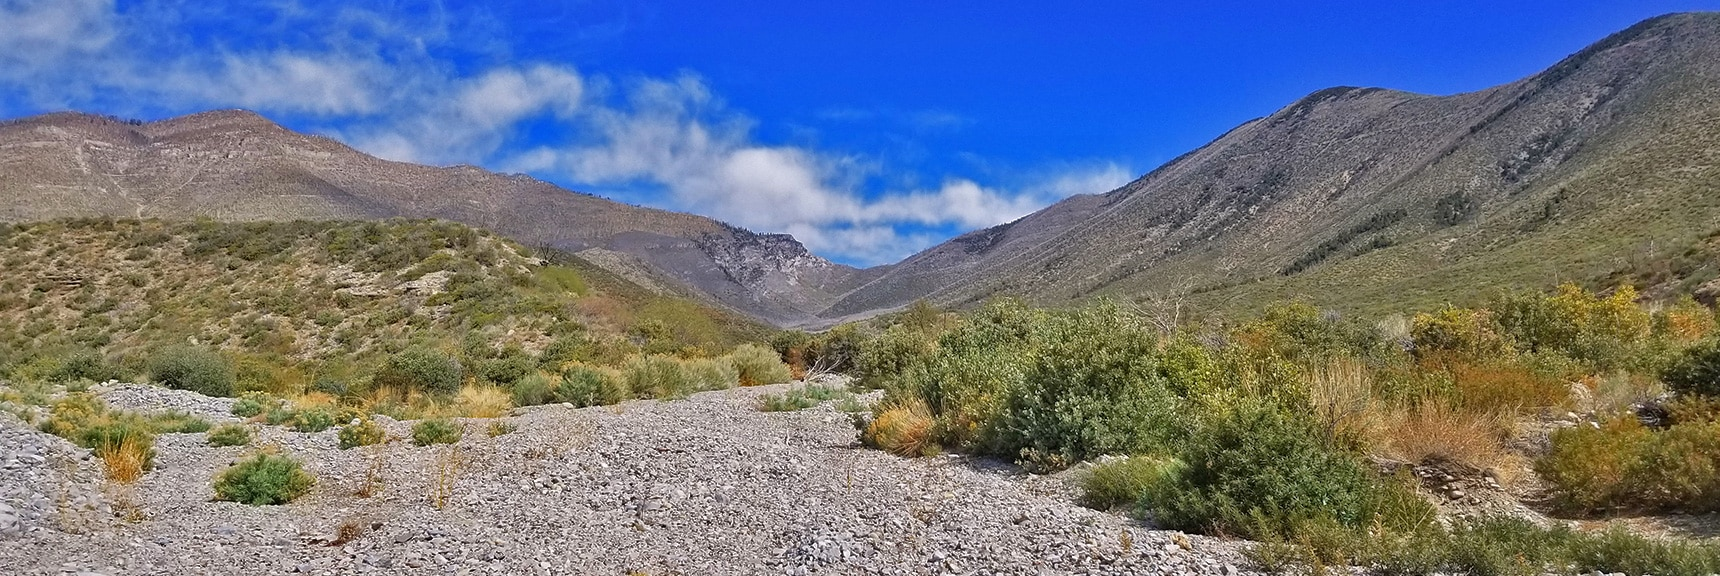 Split to the Right of the Ridge in the Middle of Lovell Canyon | Harris Mountain from Lovell Canyon Nevada